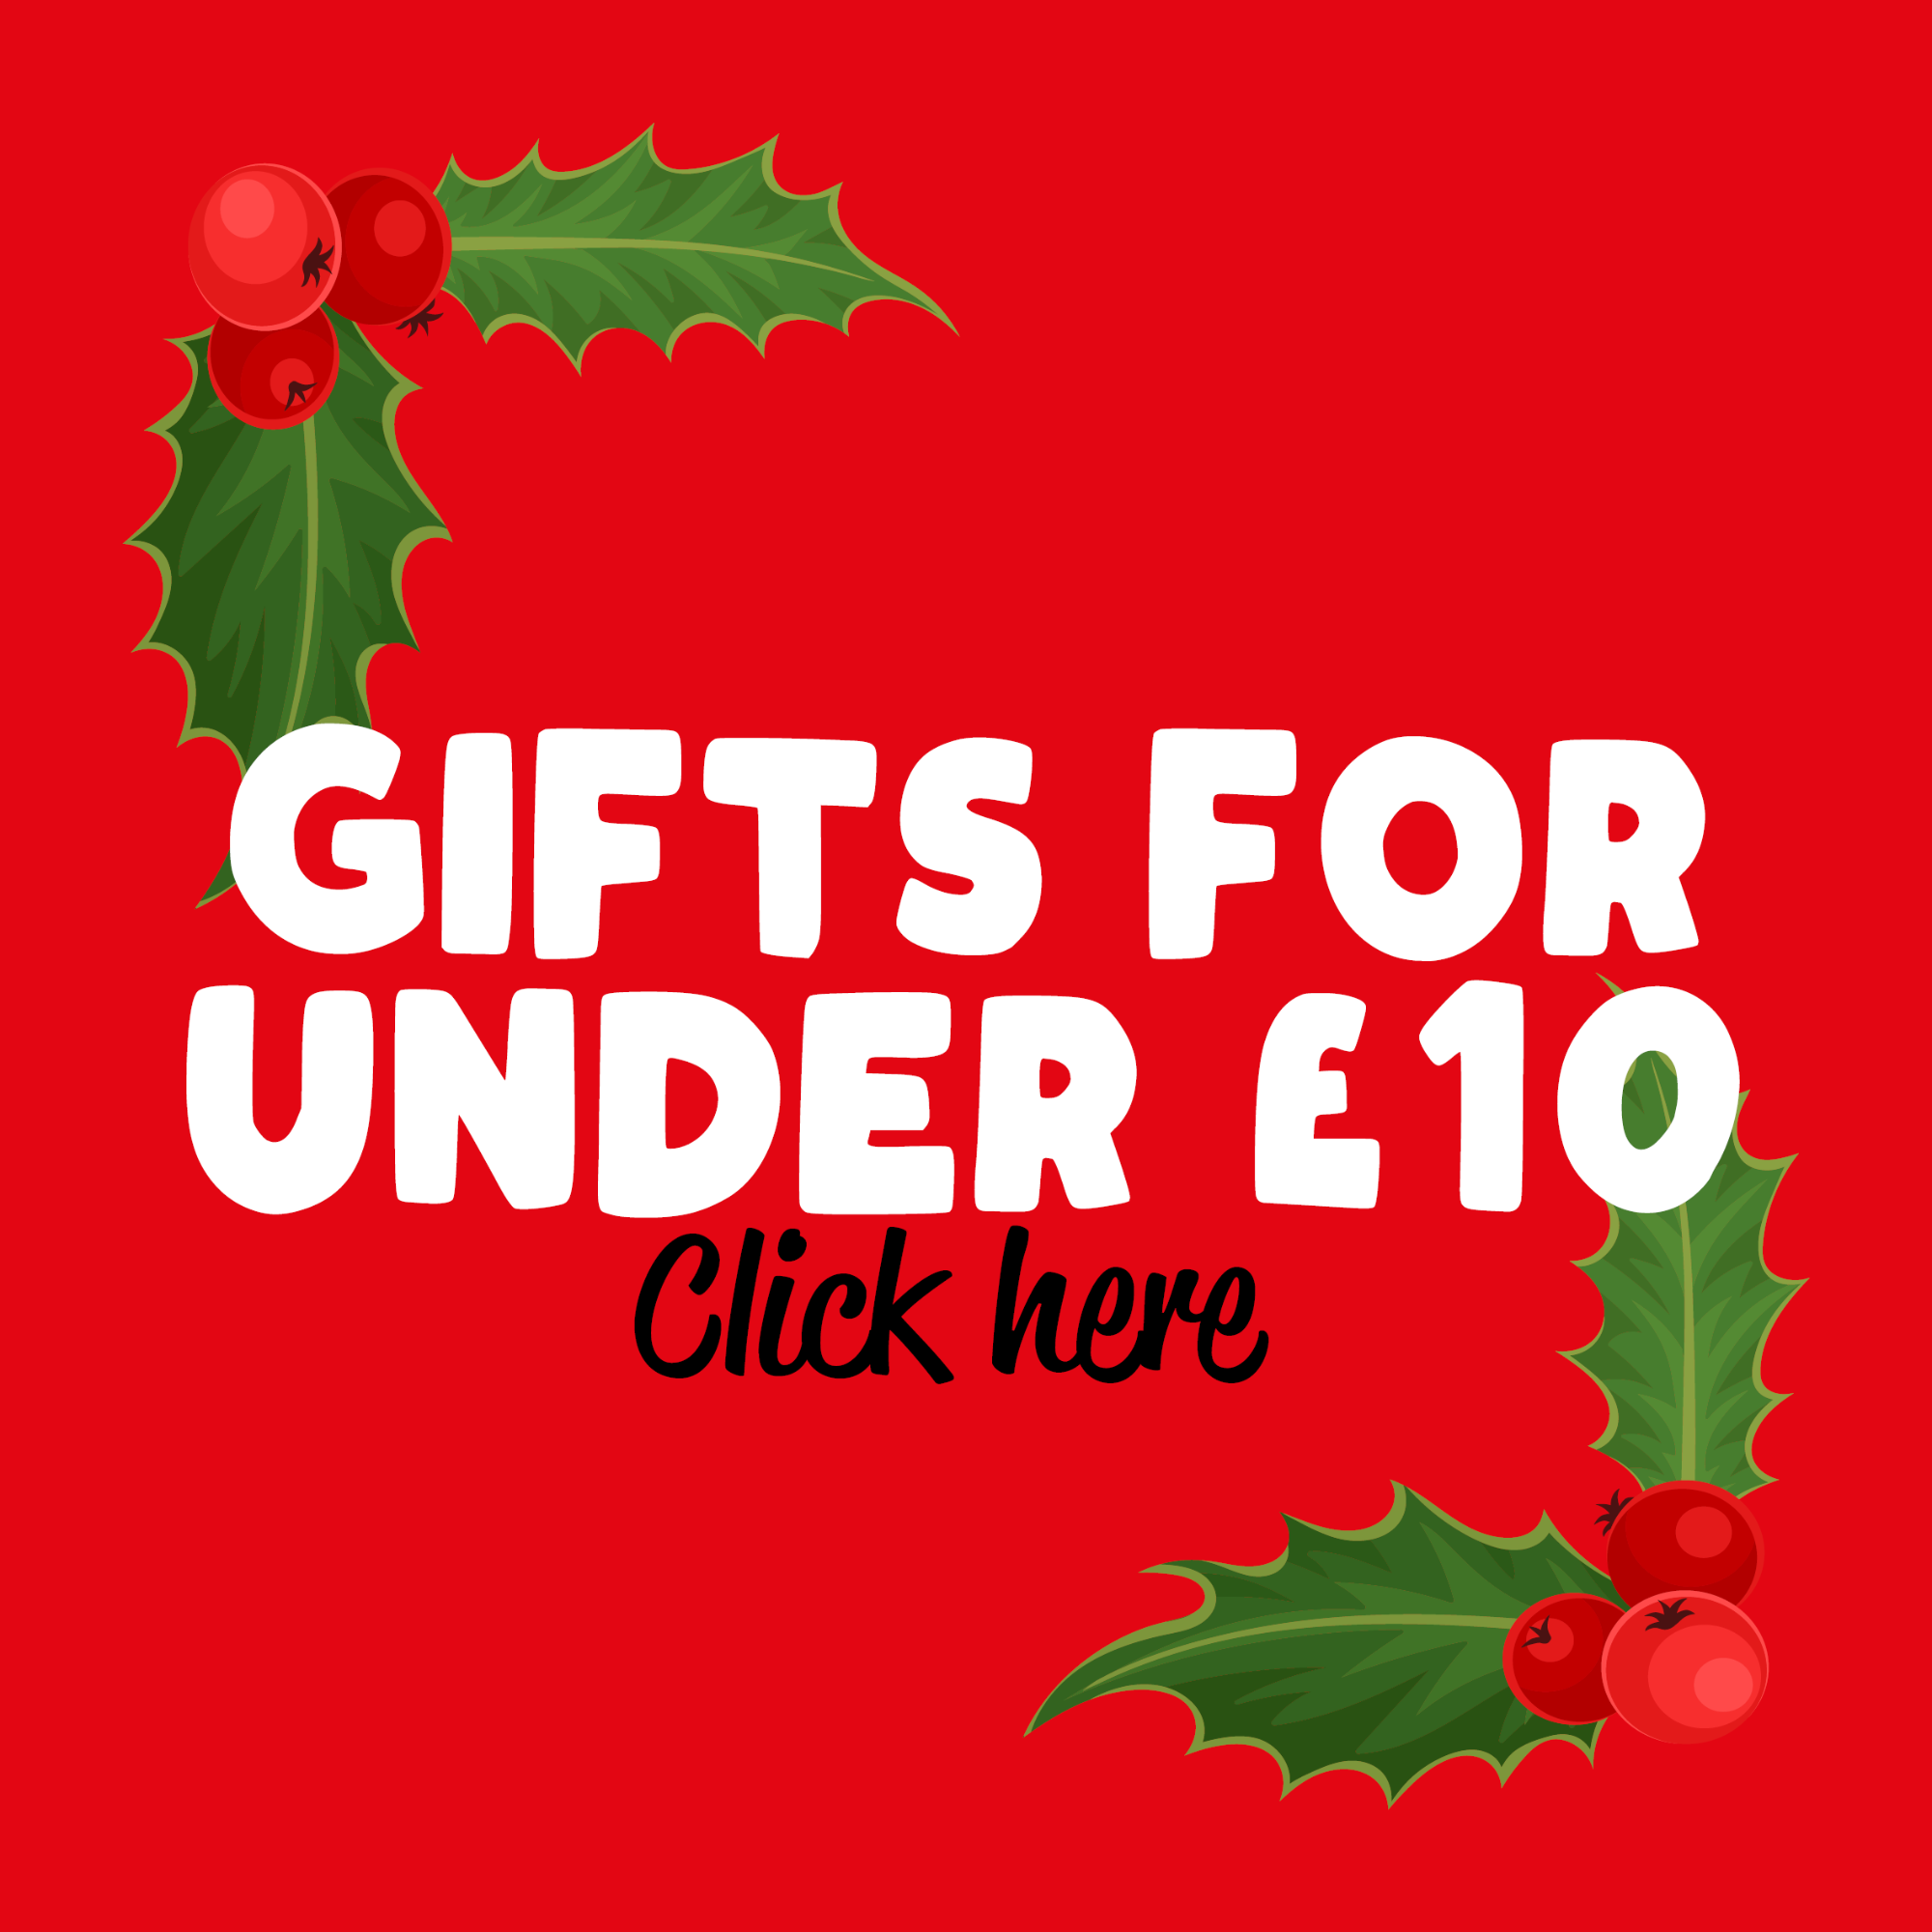 Funny gifts for under £10